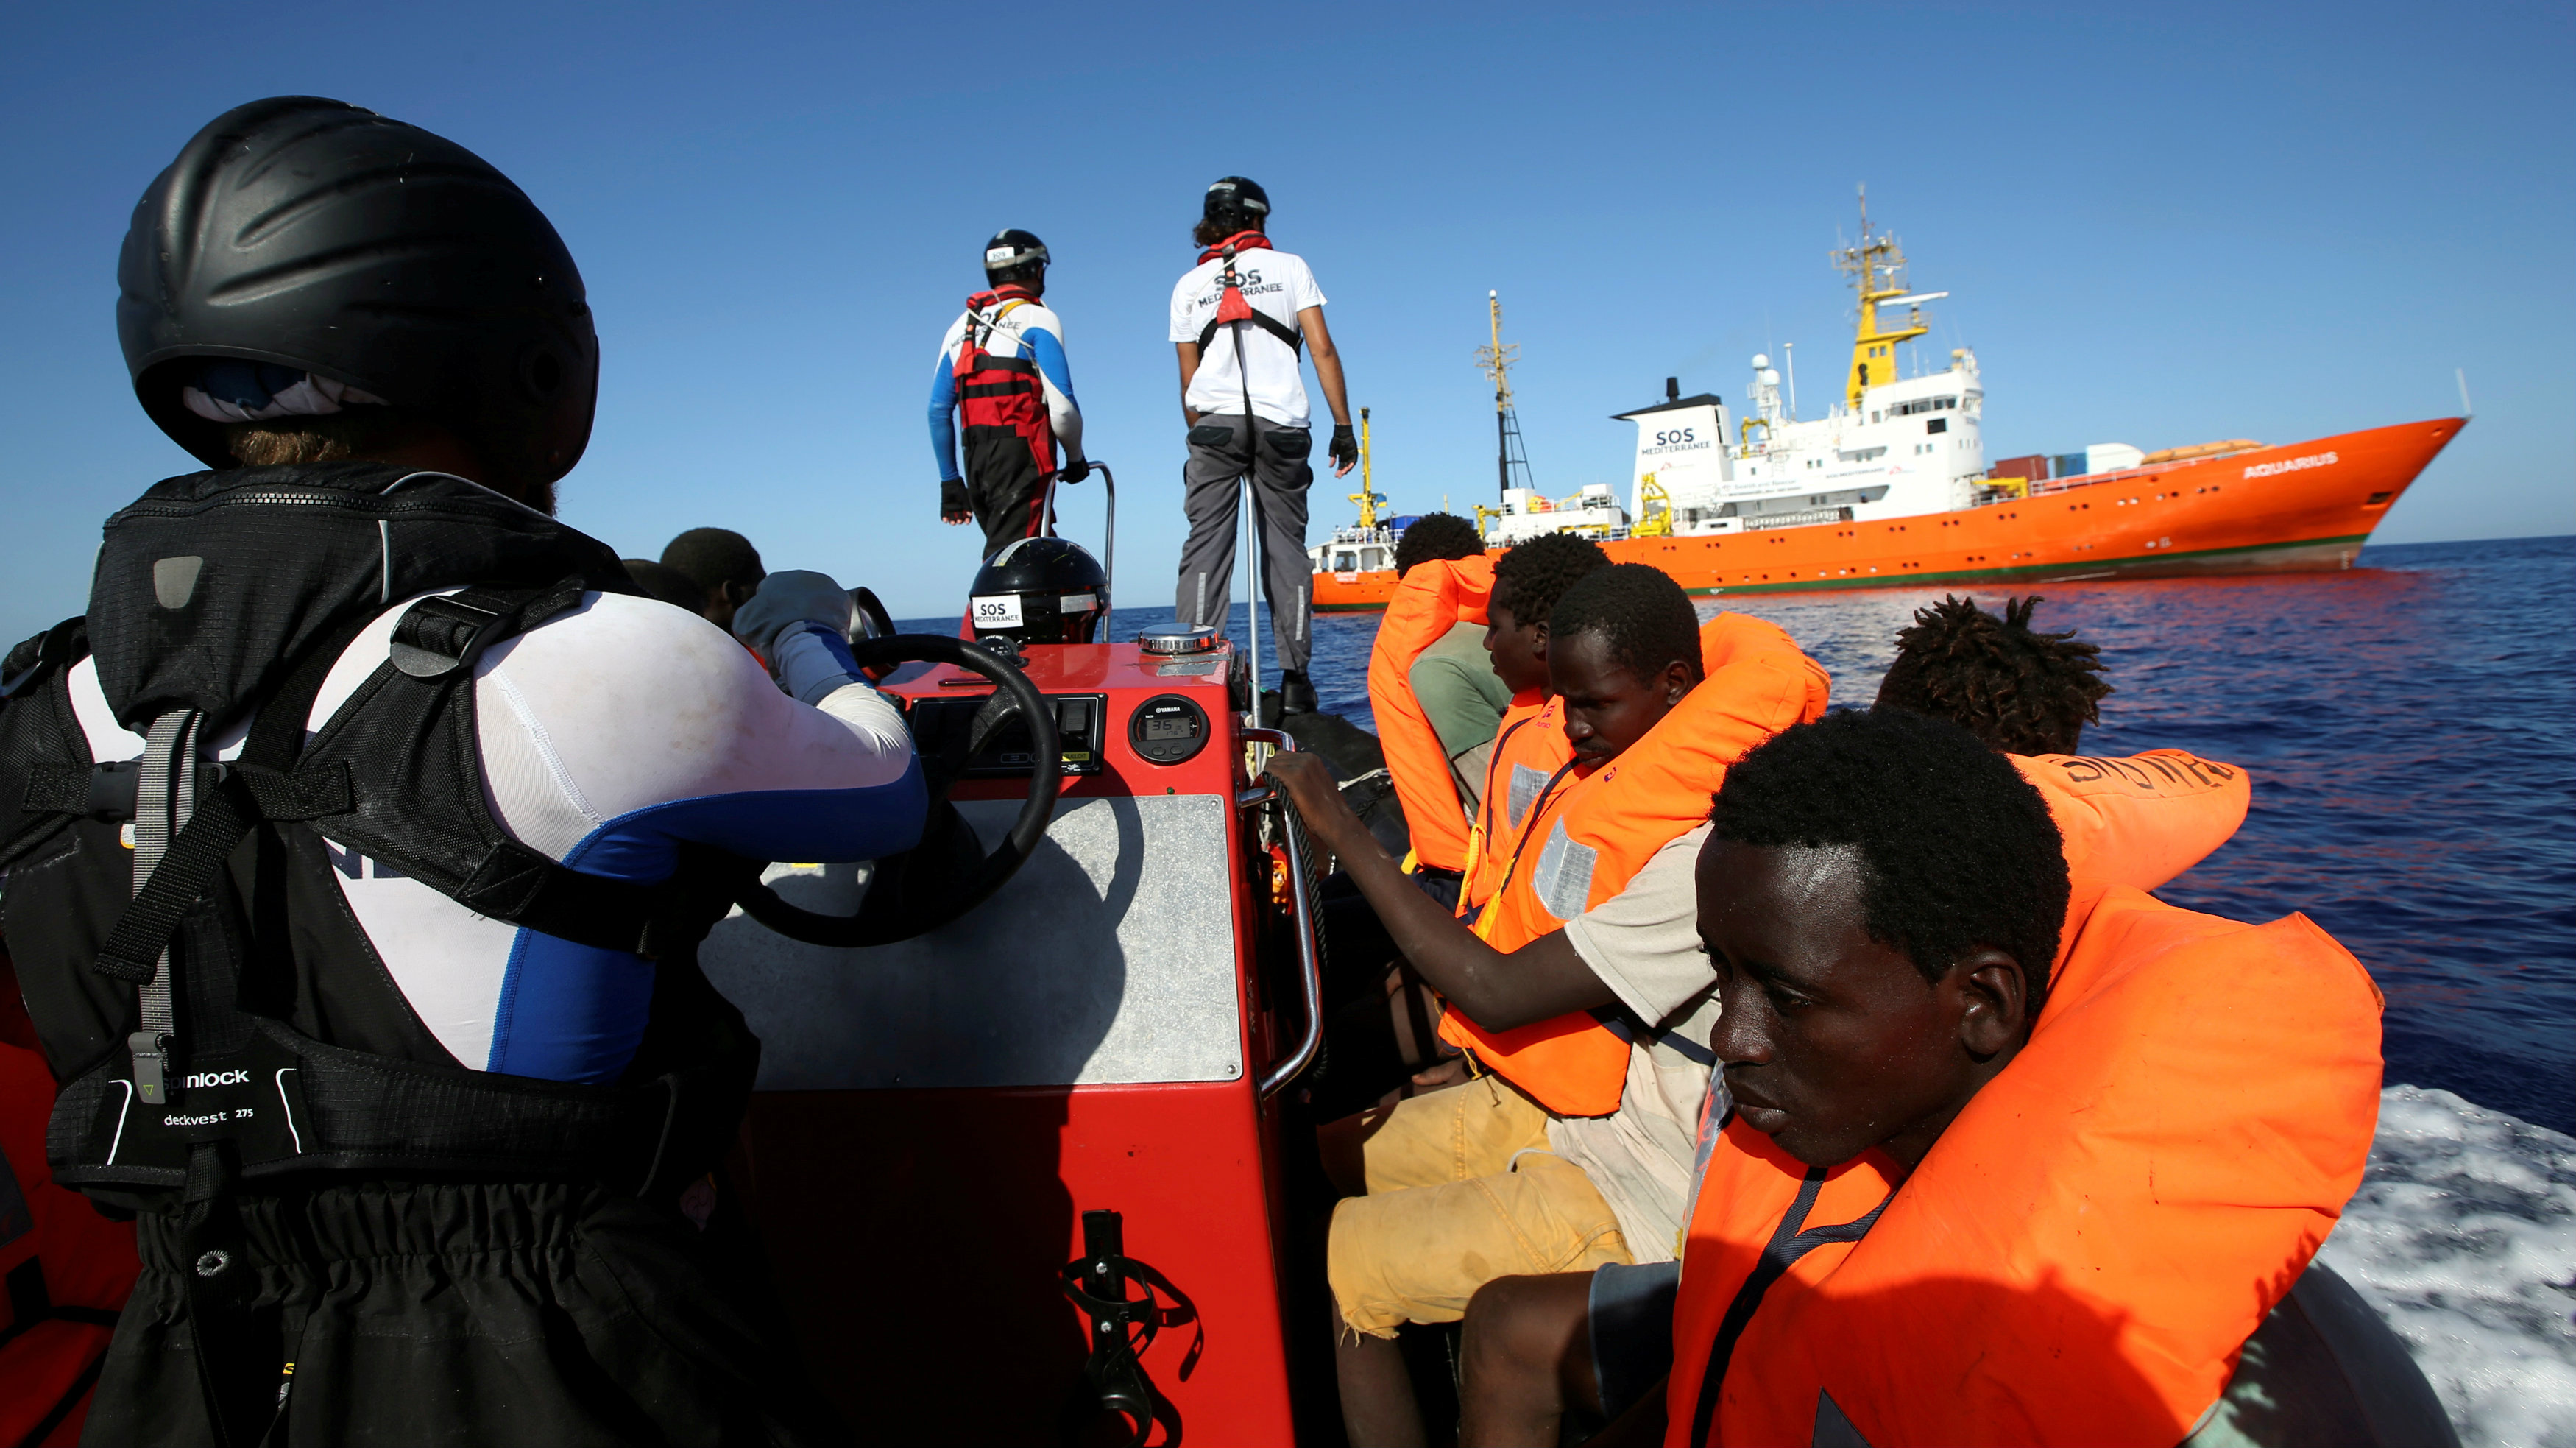 Migrants on a rubber boat are rescued by the SOS Mediterranee organisation during a search and rescue (SAR) operation with the MV Aquarius rescue ship (background) in the Mediterranean Sea, off the Libyan Coast, September 14, 2017.